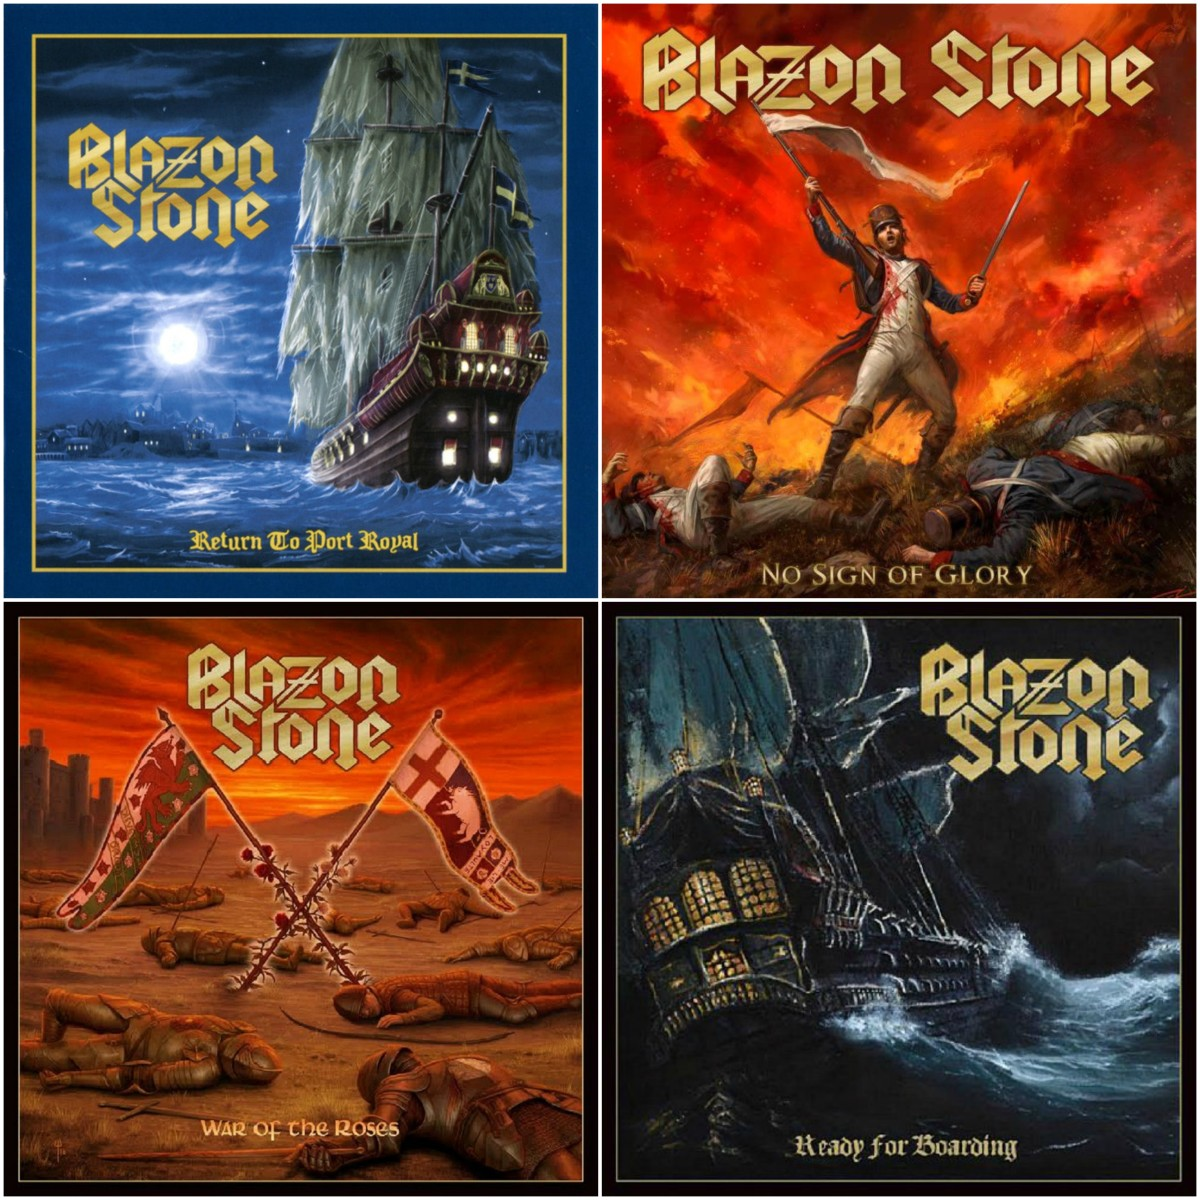 Complete your Blazon Stone collection today, kids!